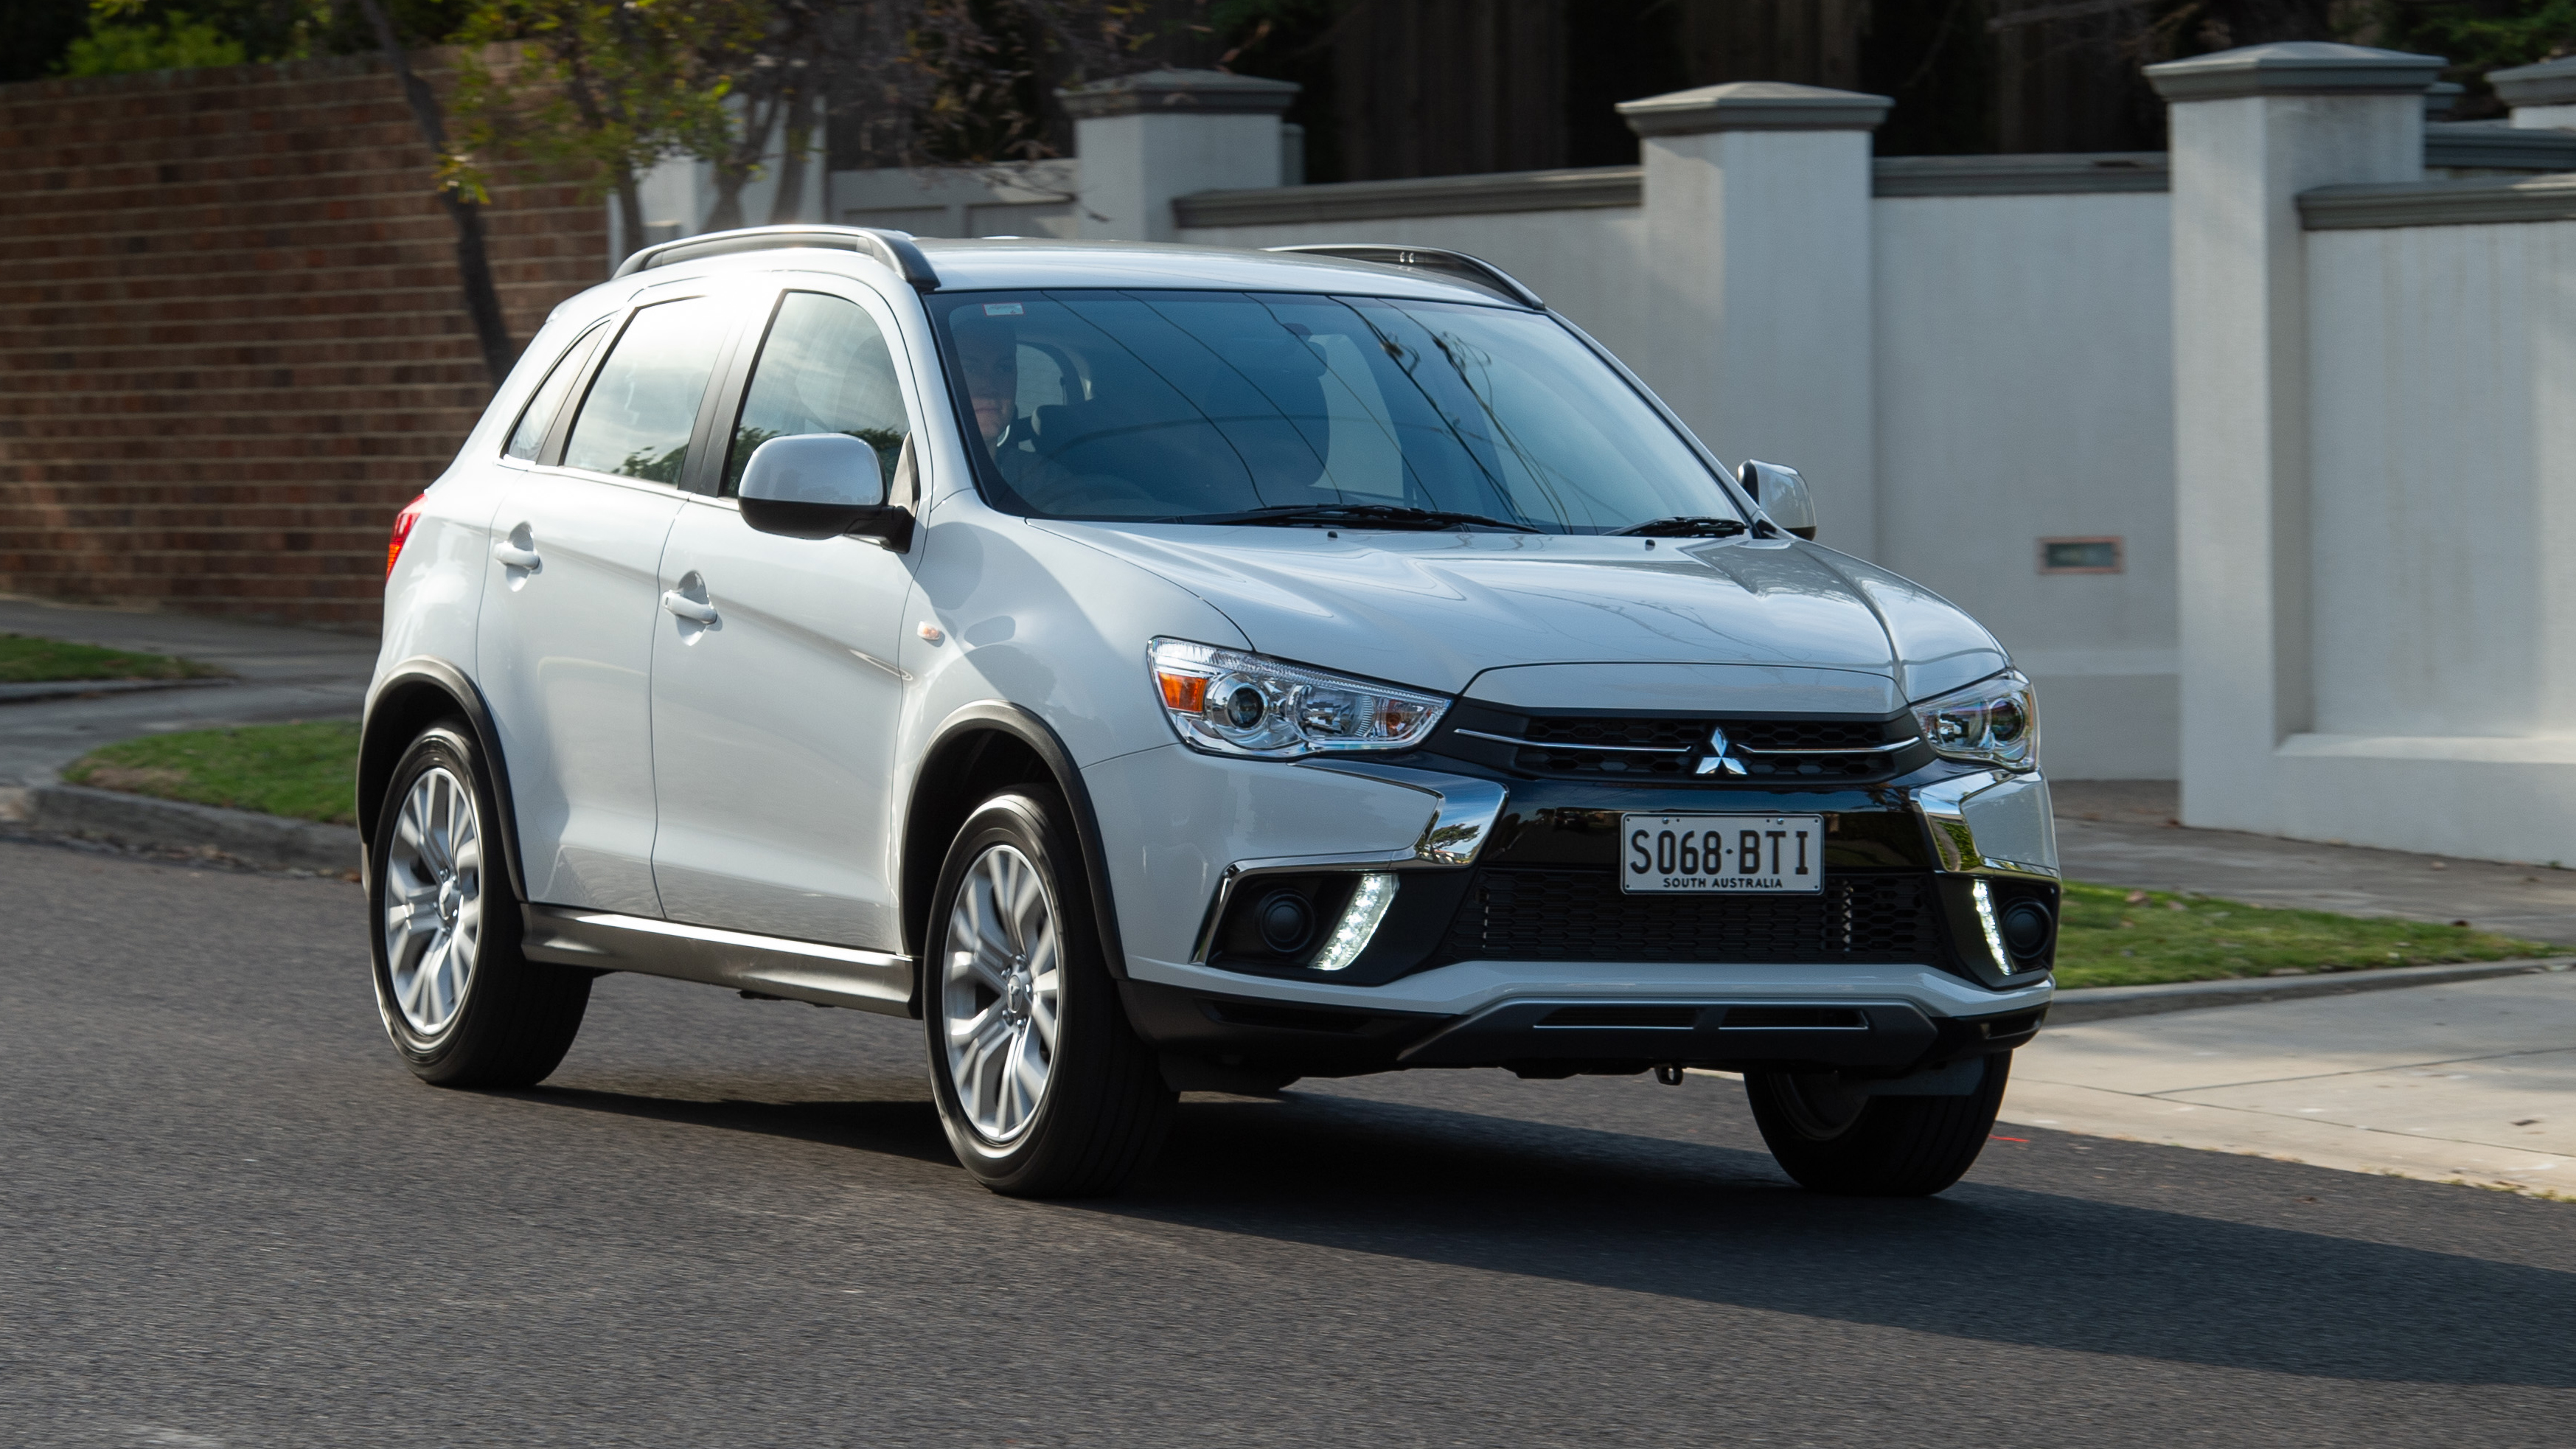 2020 Mitsubishi Asx Revealed Caradvice